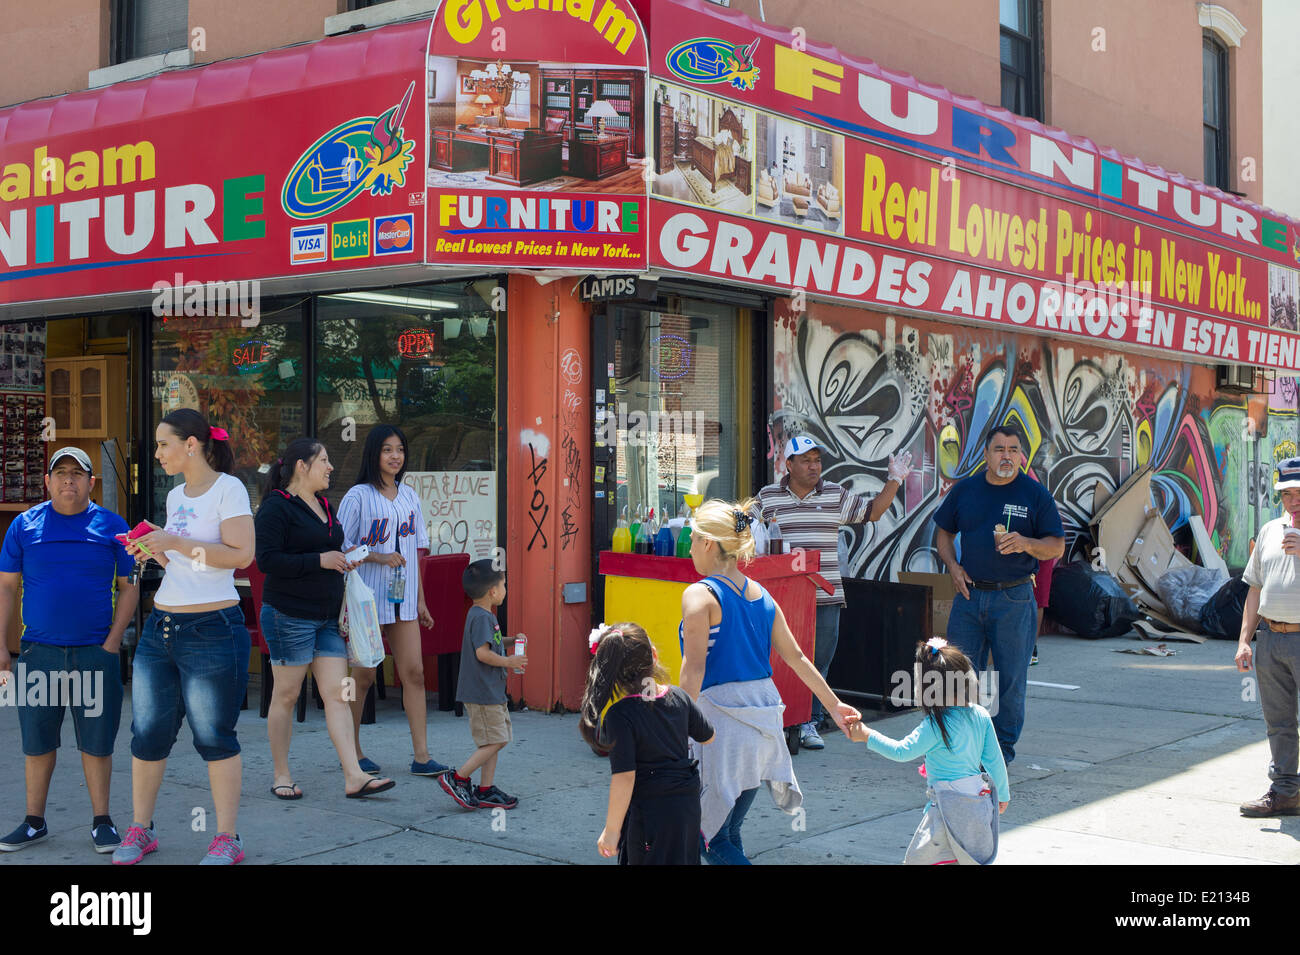 A Furniture Store On Busy Graham Avenue In The Bushwick Neighborhood Stock Photo 70095211 Alamy